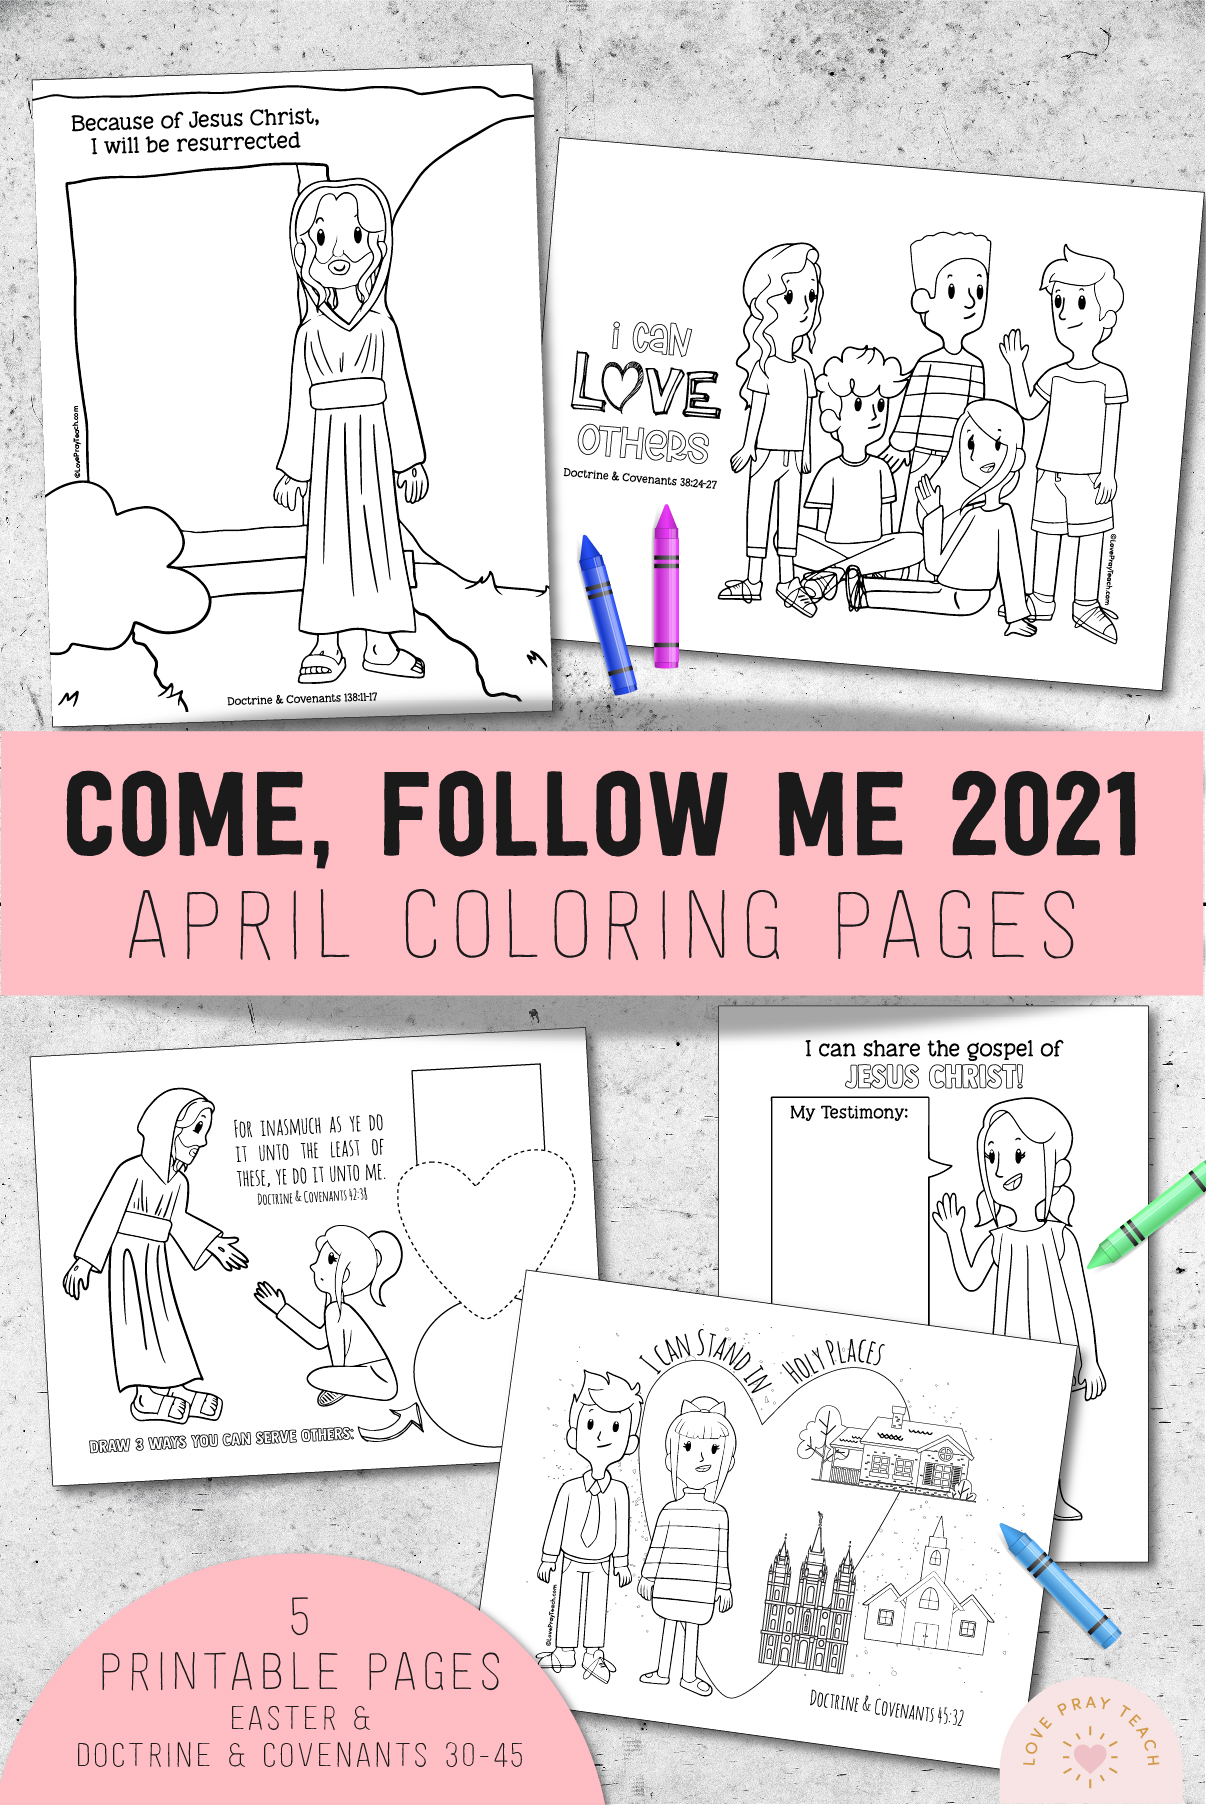 April 2021 Come, Follow Me Coloring Pages: Easter and Doctrine & Covenants 30-45 www.LovePrayTeach.com